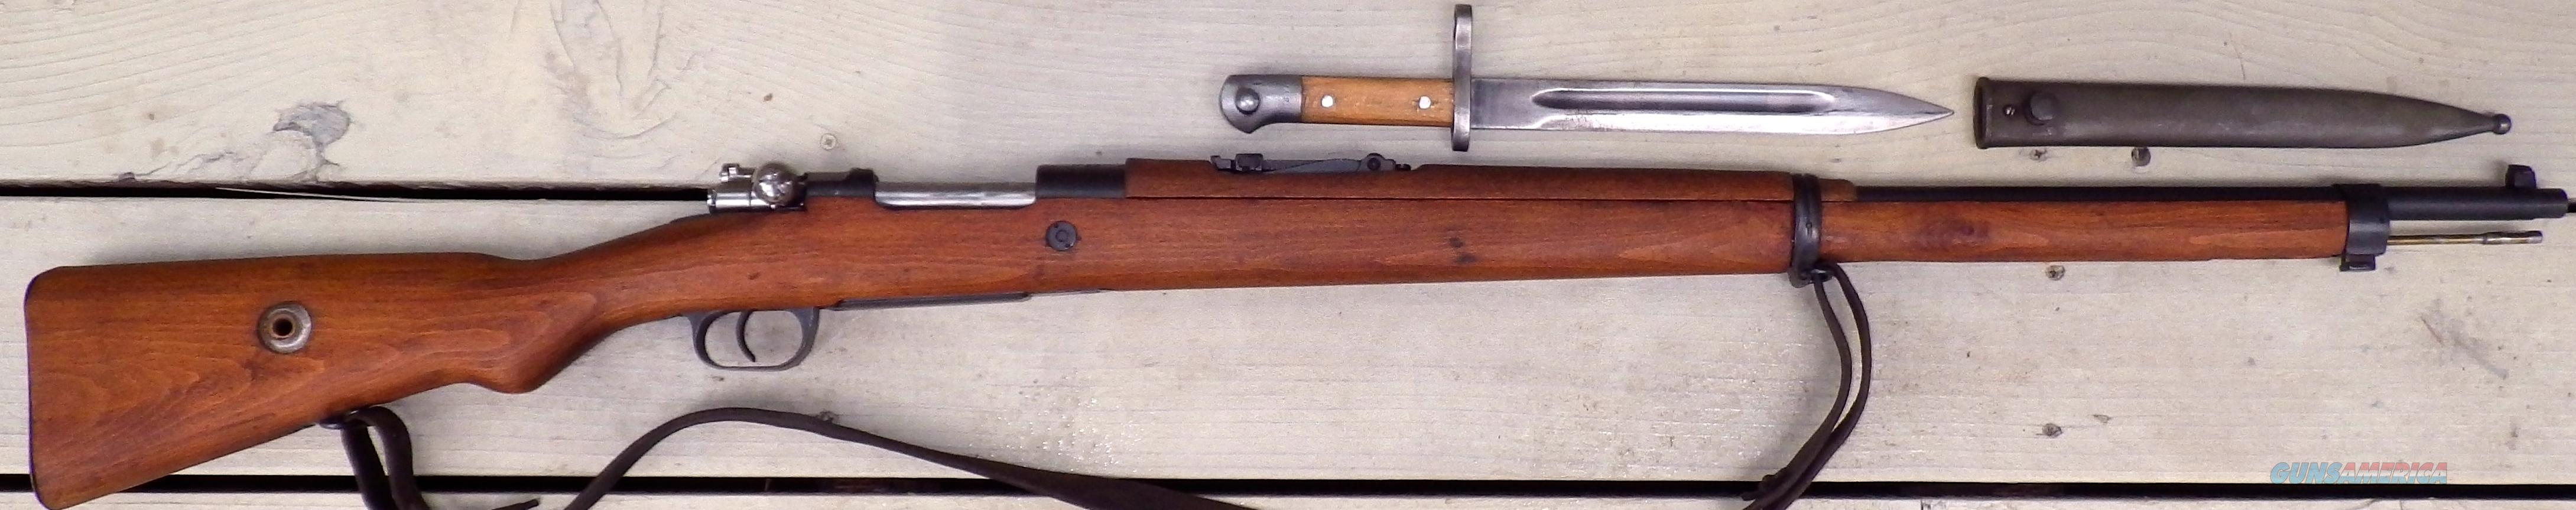 Mauser 98, Turkish 1943, bayonet  Guns > Rifles > Military Misc. Rifles Non-US > Other